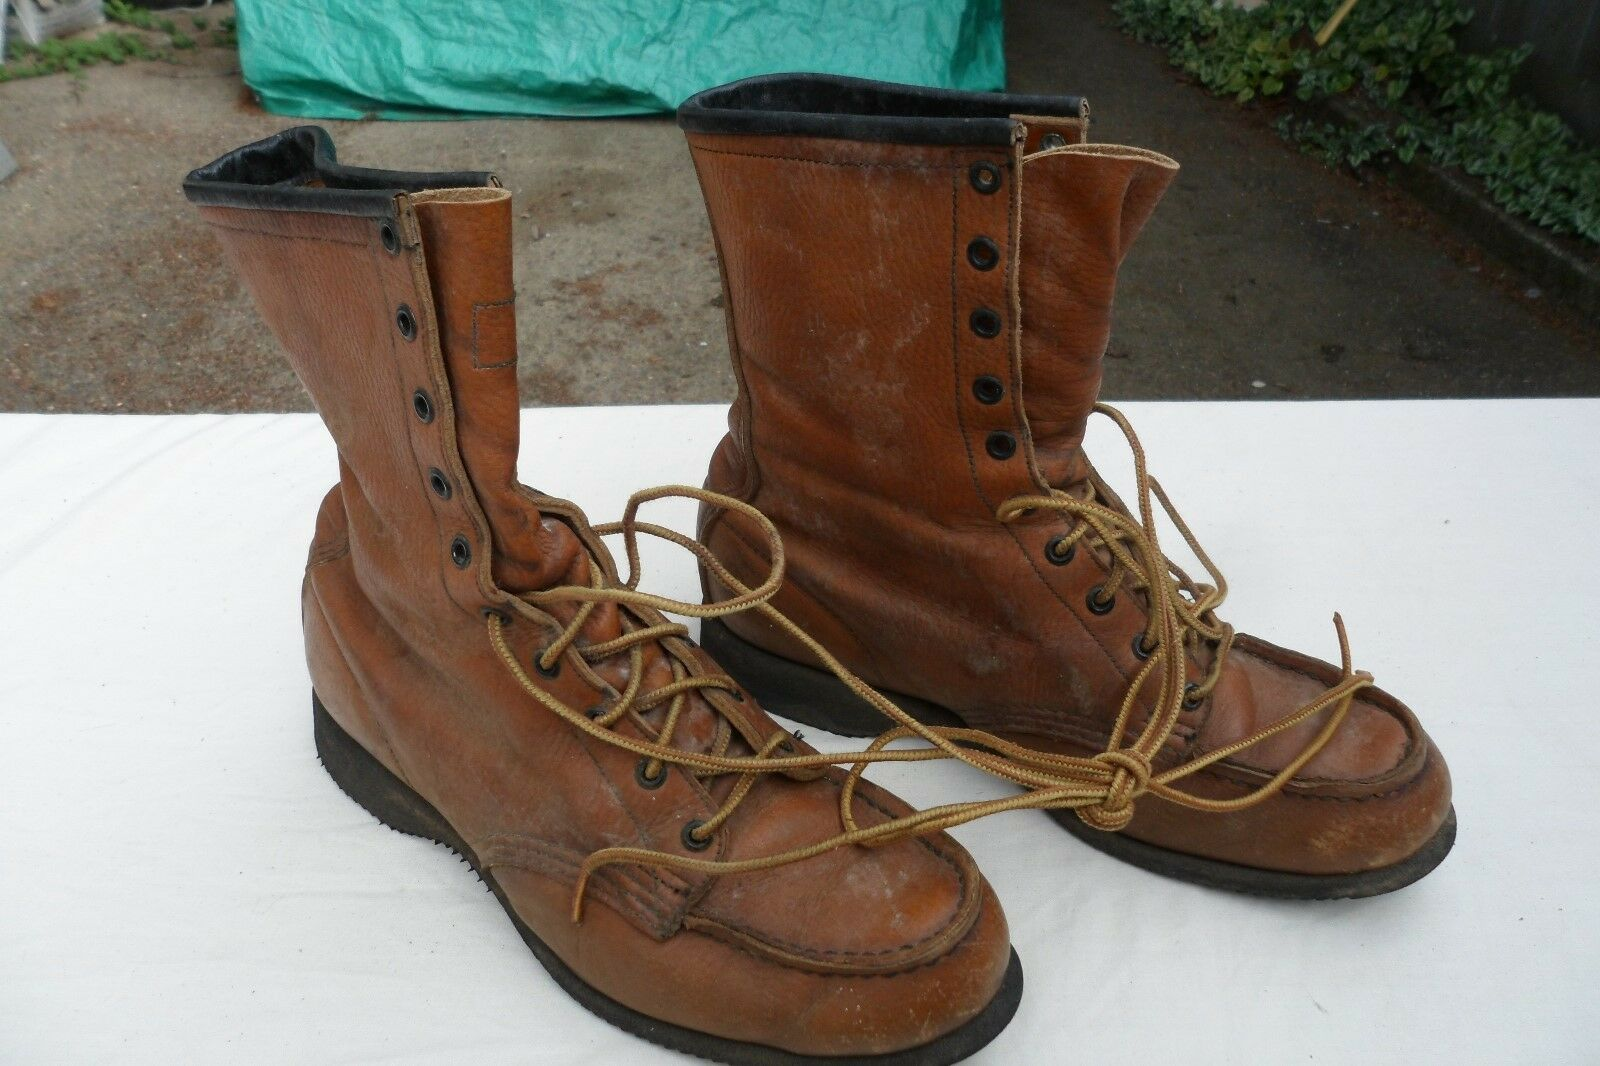 Vtg 1960's?~ Rosso Wing  moc toe?  Boots sz. 7.5 C style 29046?